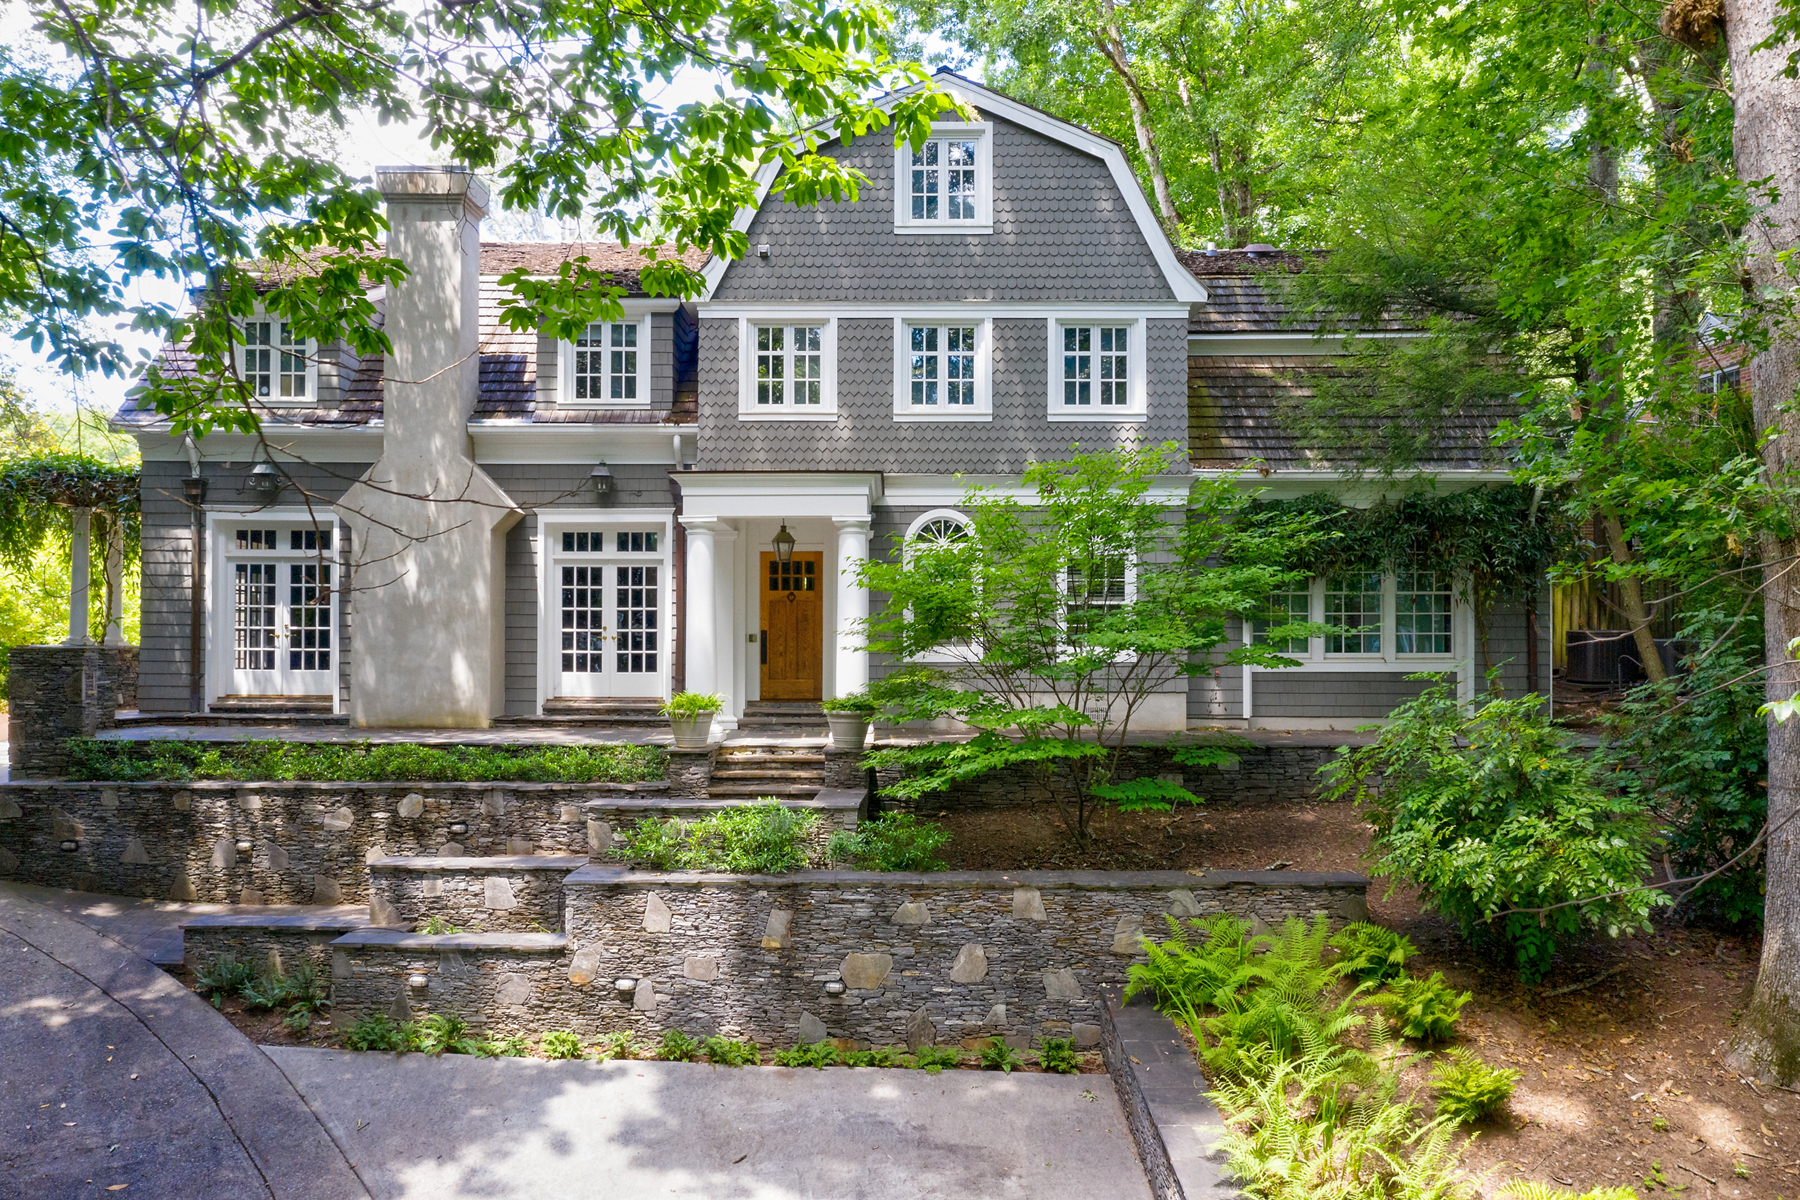 Property for Sale at Beautiful Colonial-Style Home in Sought After Buckhead Location 3200 West Andrews Drive Atlanta, Georgia 30305 United States